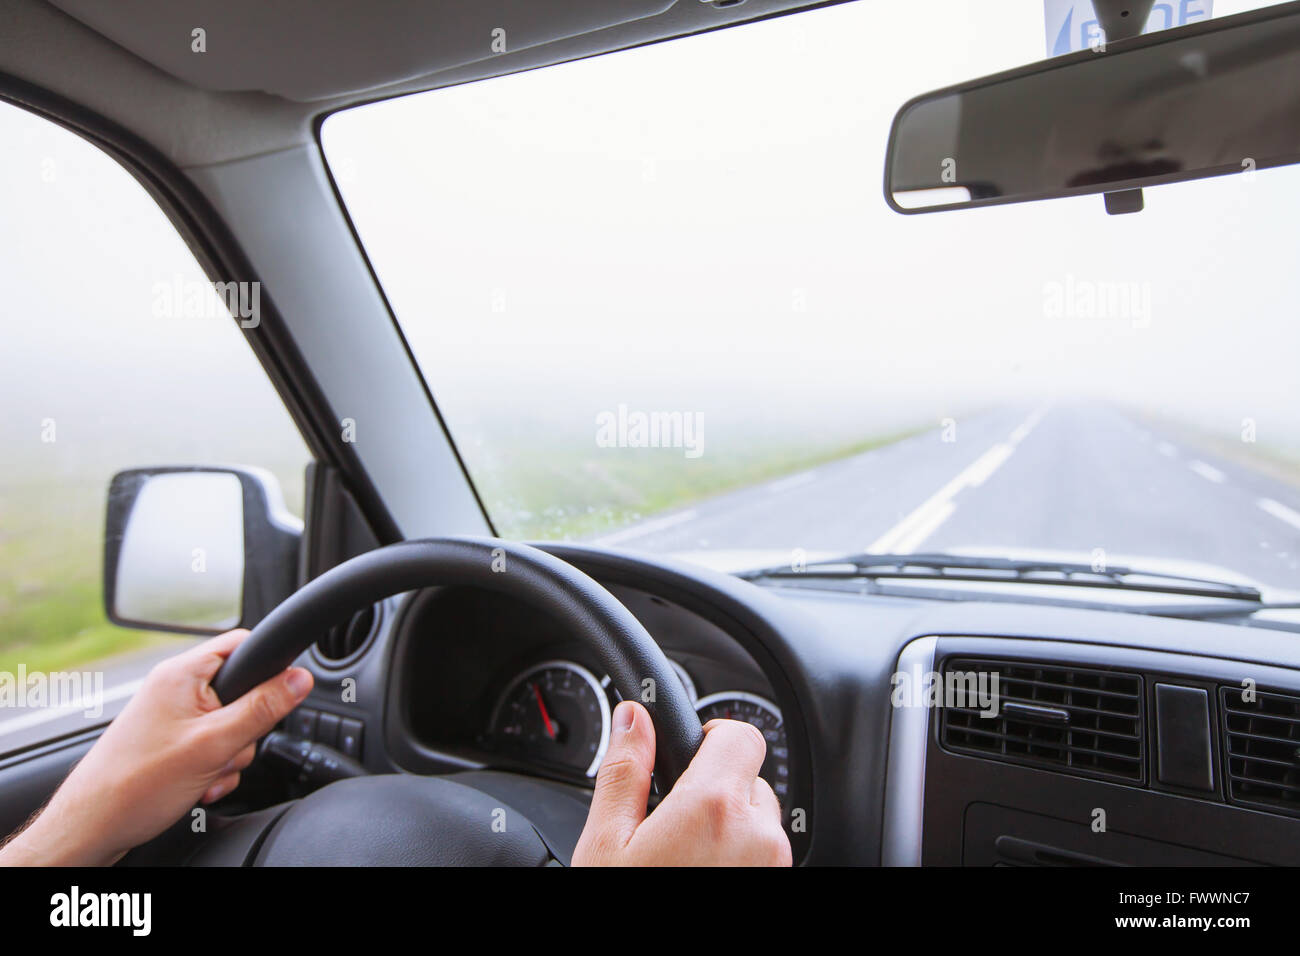 driving car in fog, bad weather conditions, road in foggy day with zero visibility - Stock Image